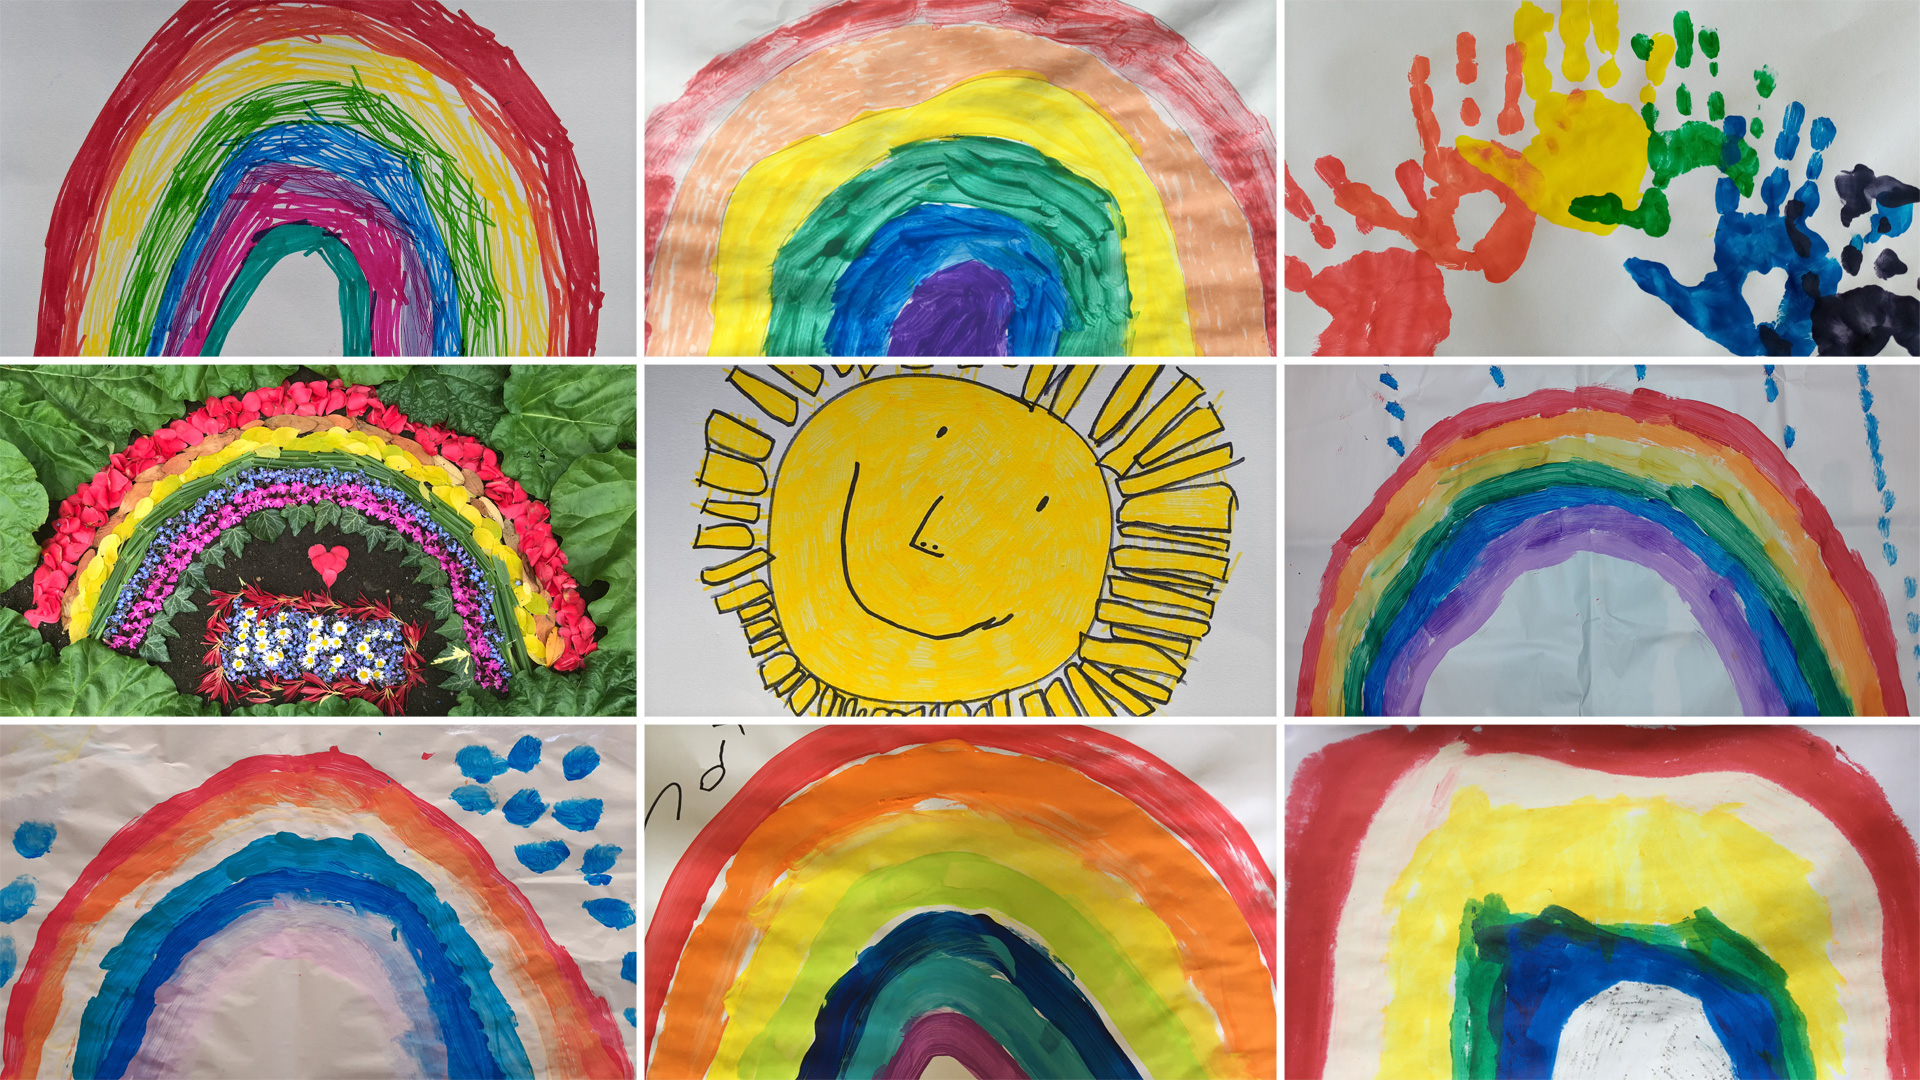 Rainbow pictures and paintings produced during the coronavirus lockdown in Menston